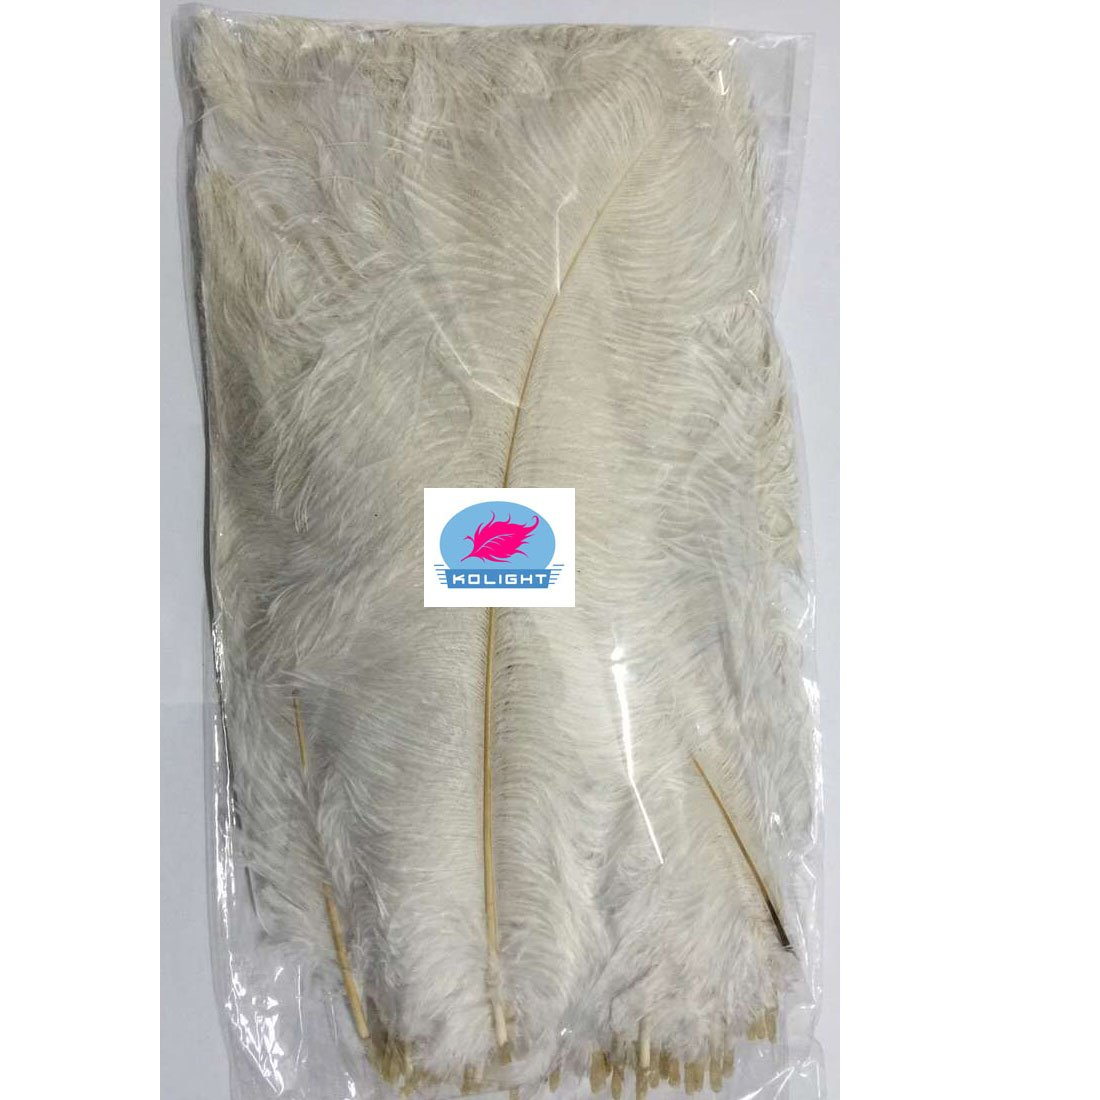 KOLIGHT 100pcs Ostrich Feather White 12''-14'' Natural Feathers Wedding, Party,Home,Hairs Decoration by KOLIGHT (Image #6)